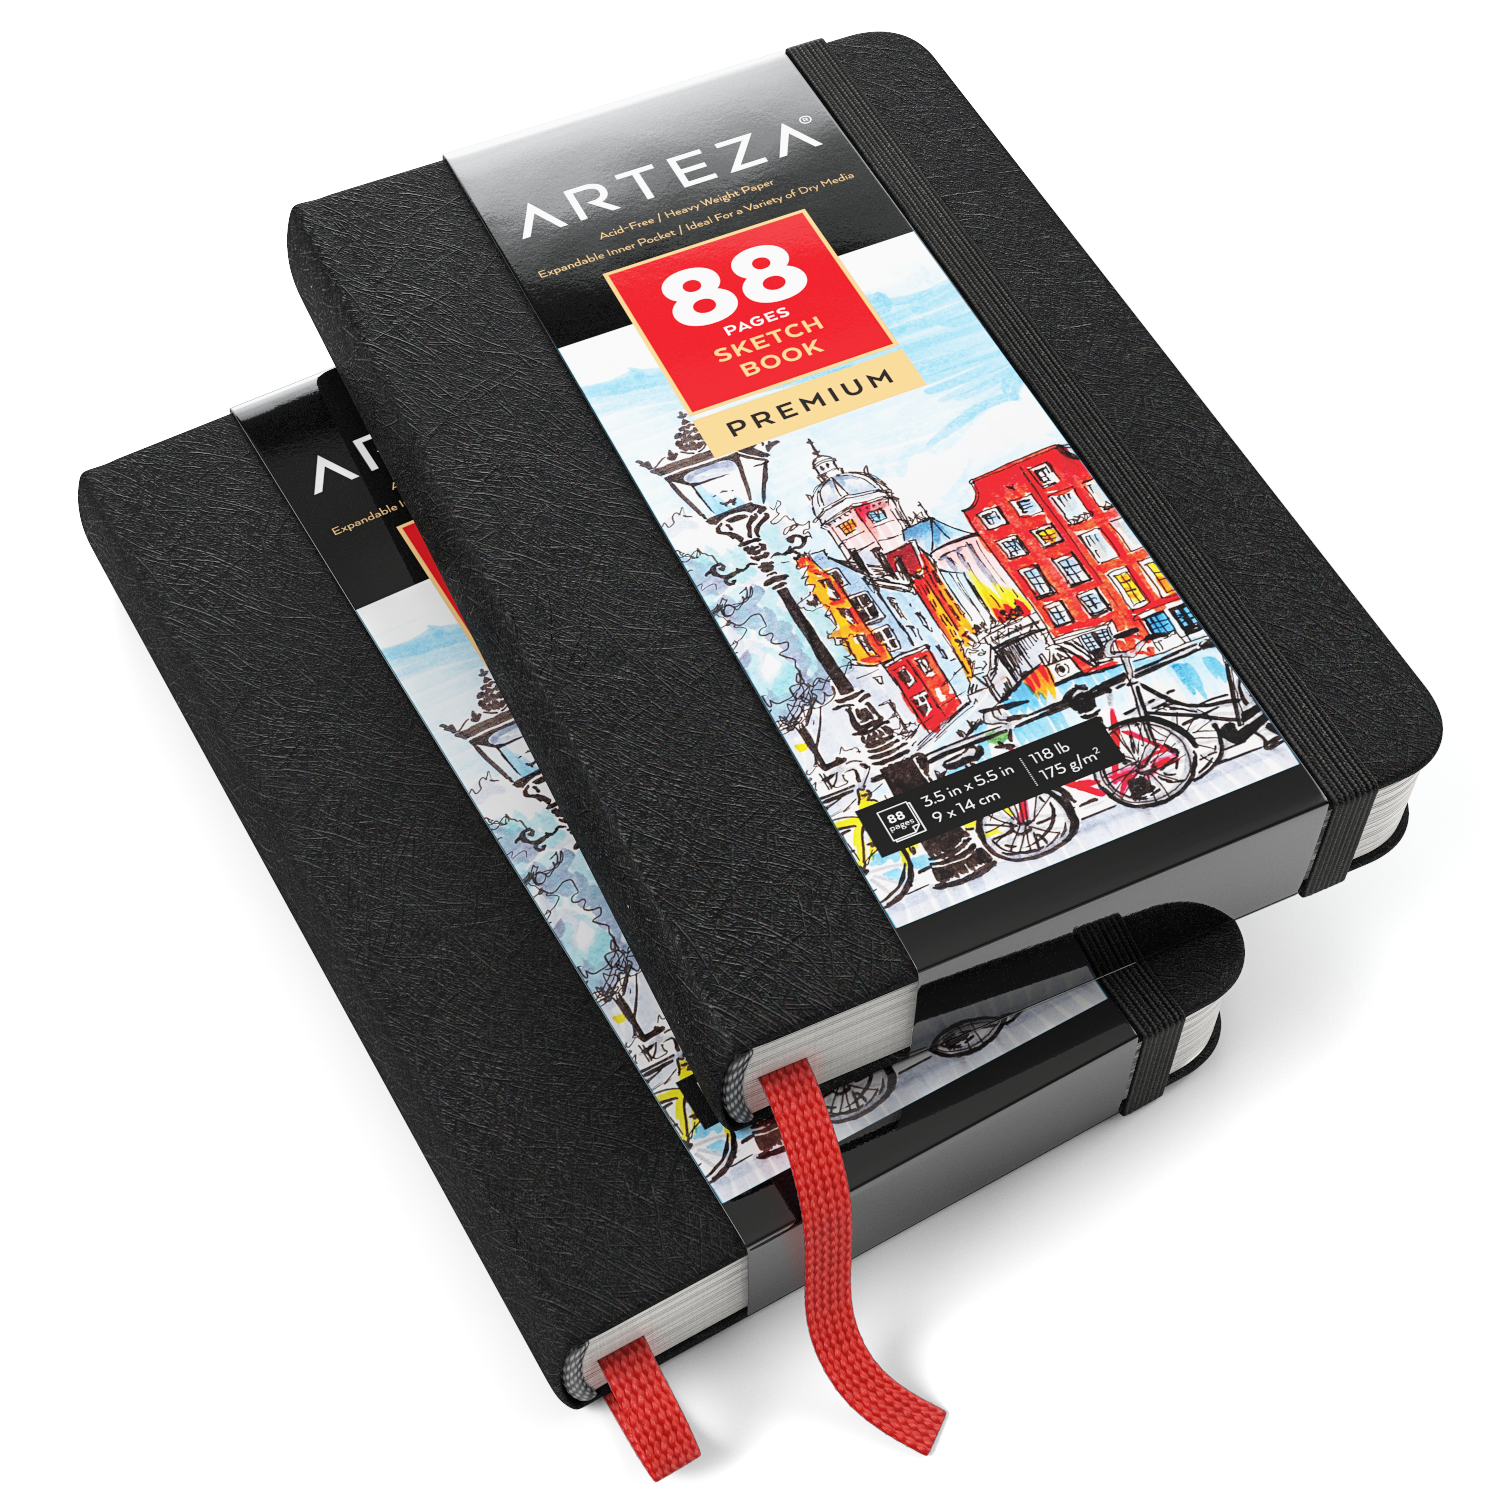 Mini Sketchbook, 3.5″ x 5.5″, 88 Pages – Pack of 2